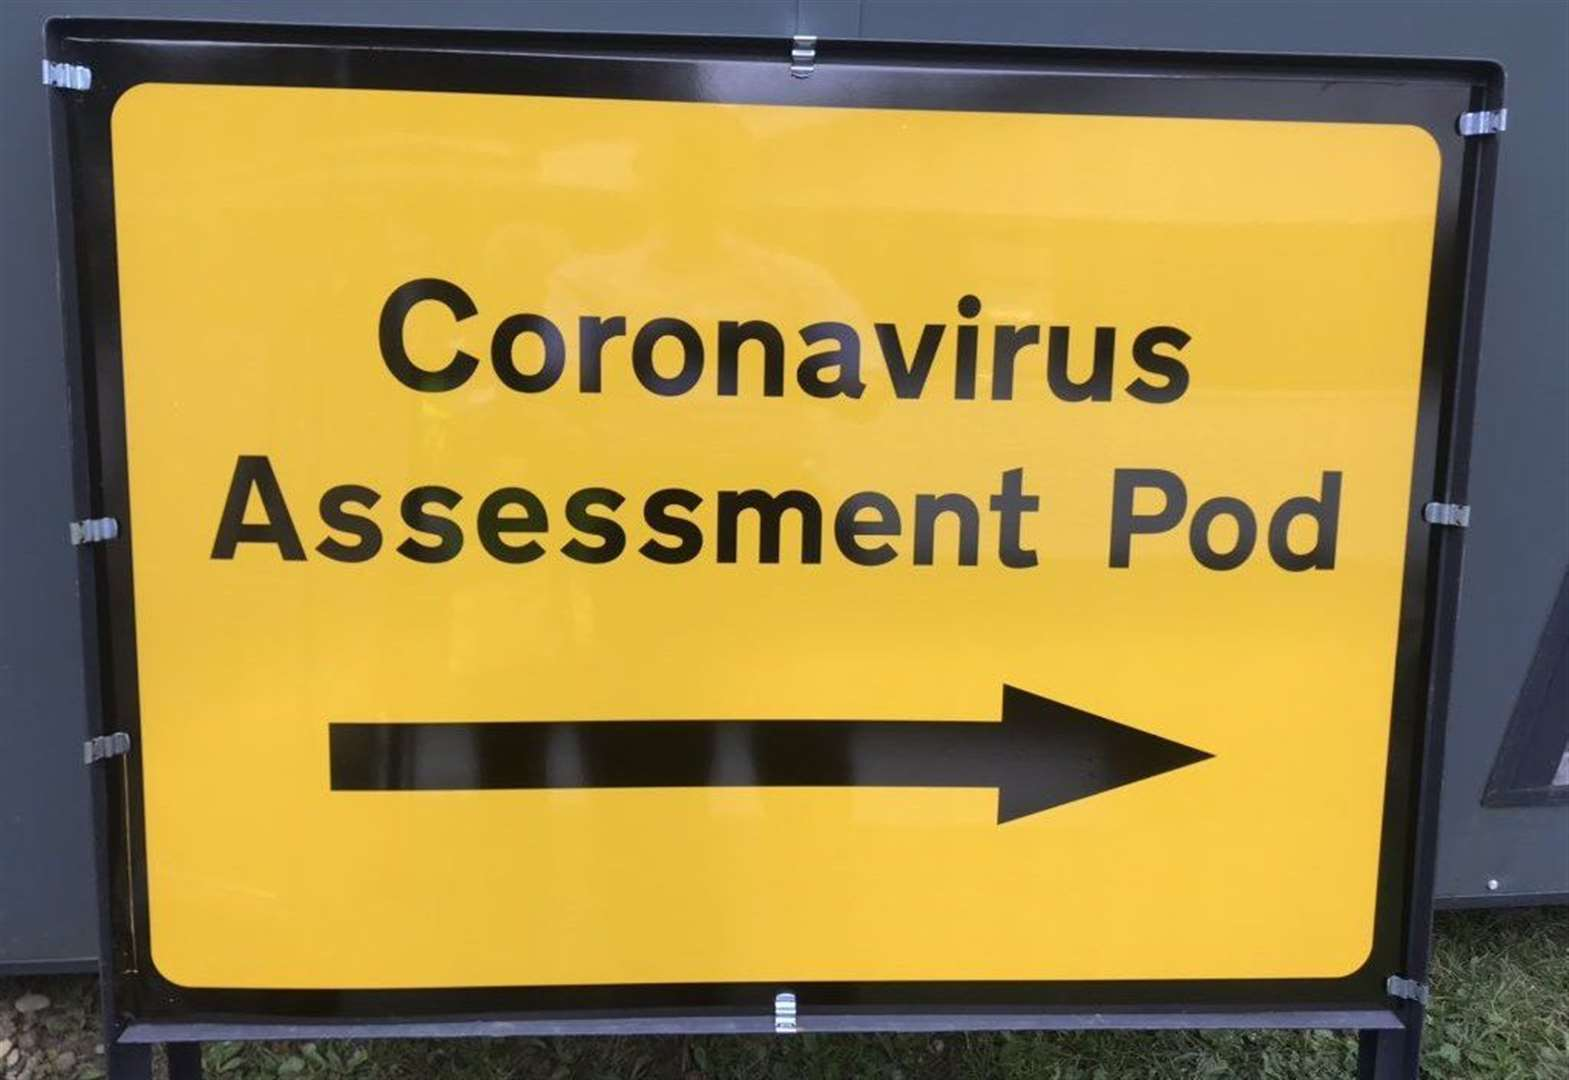 Hospital preparing coronavirus assessment pod